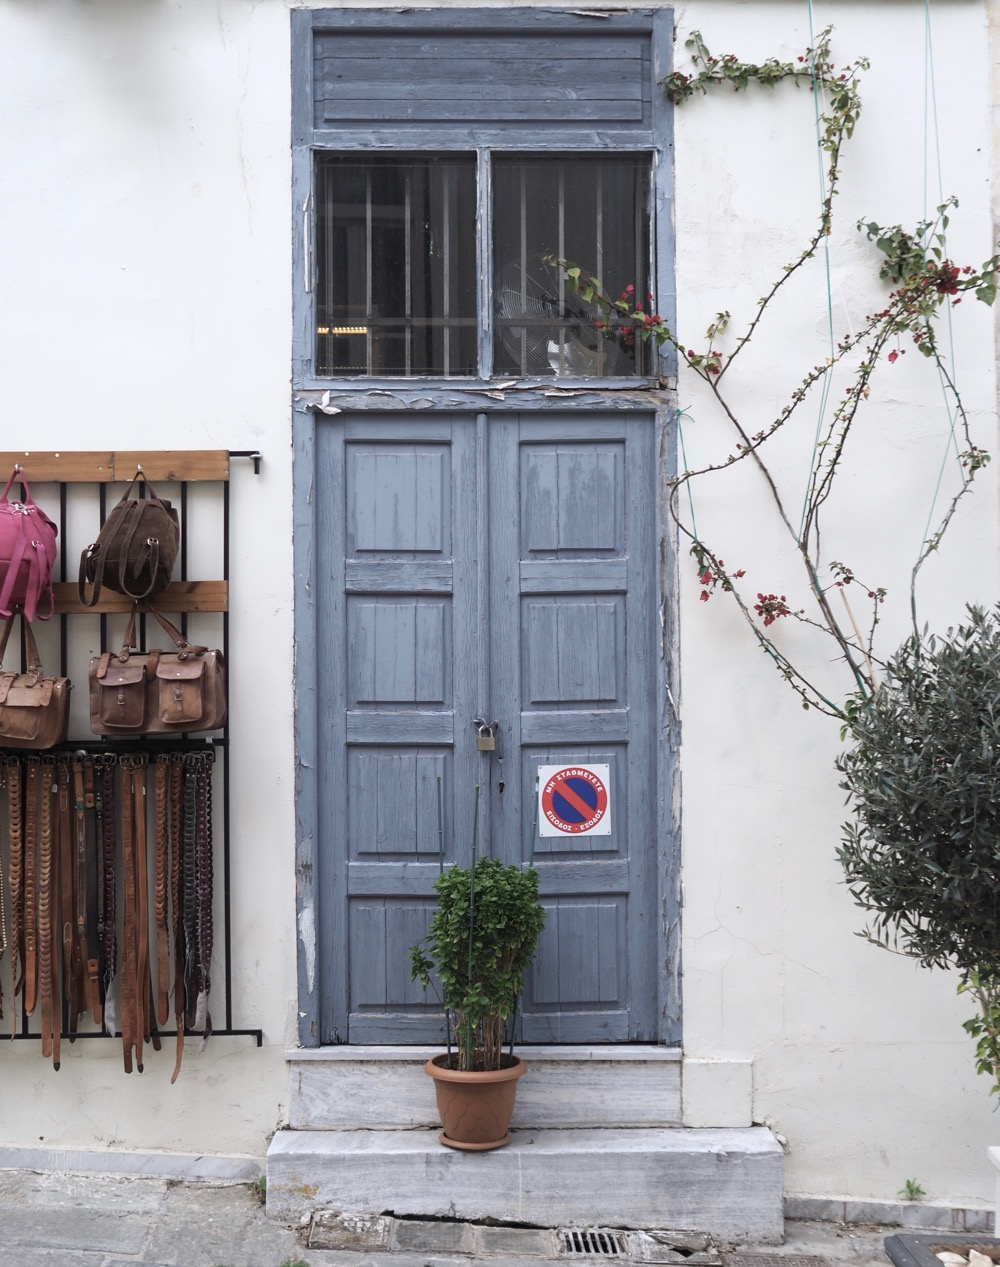 Capturing Pretty Doors in Athens, Greece